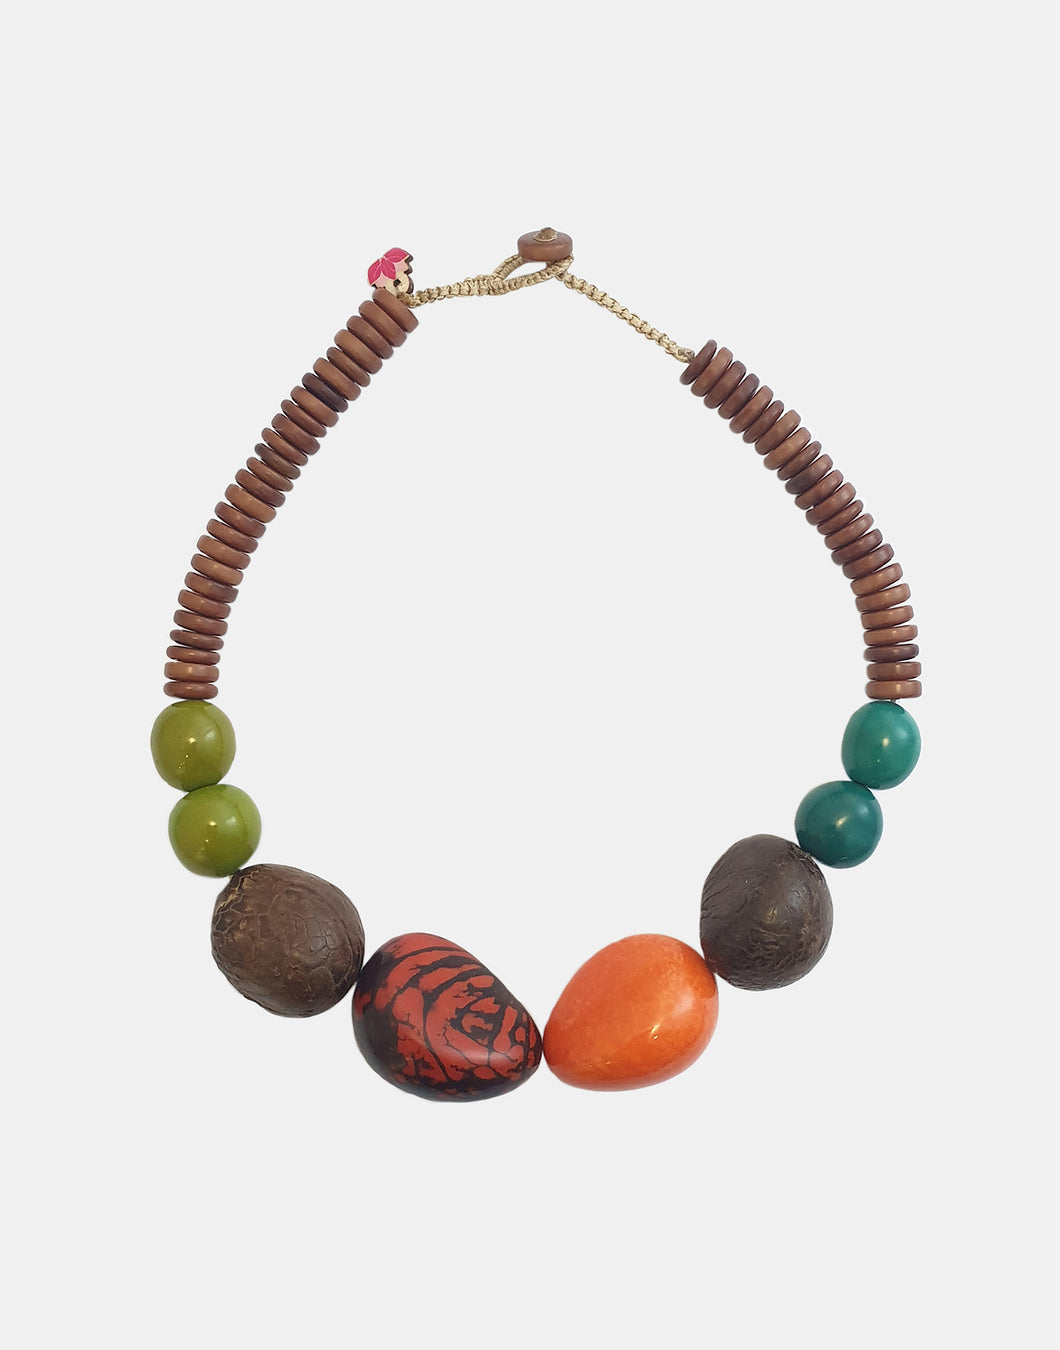 Paru Tagua Nut Chunky Necklace